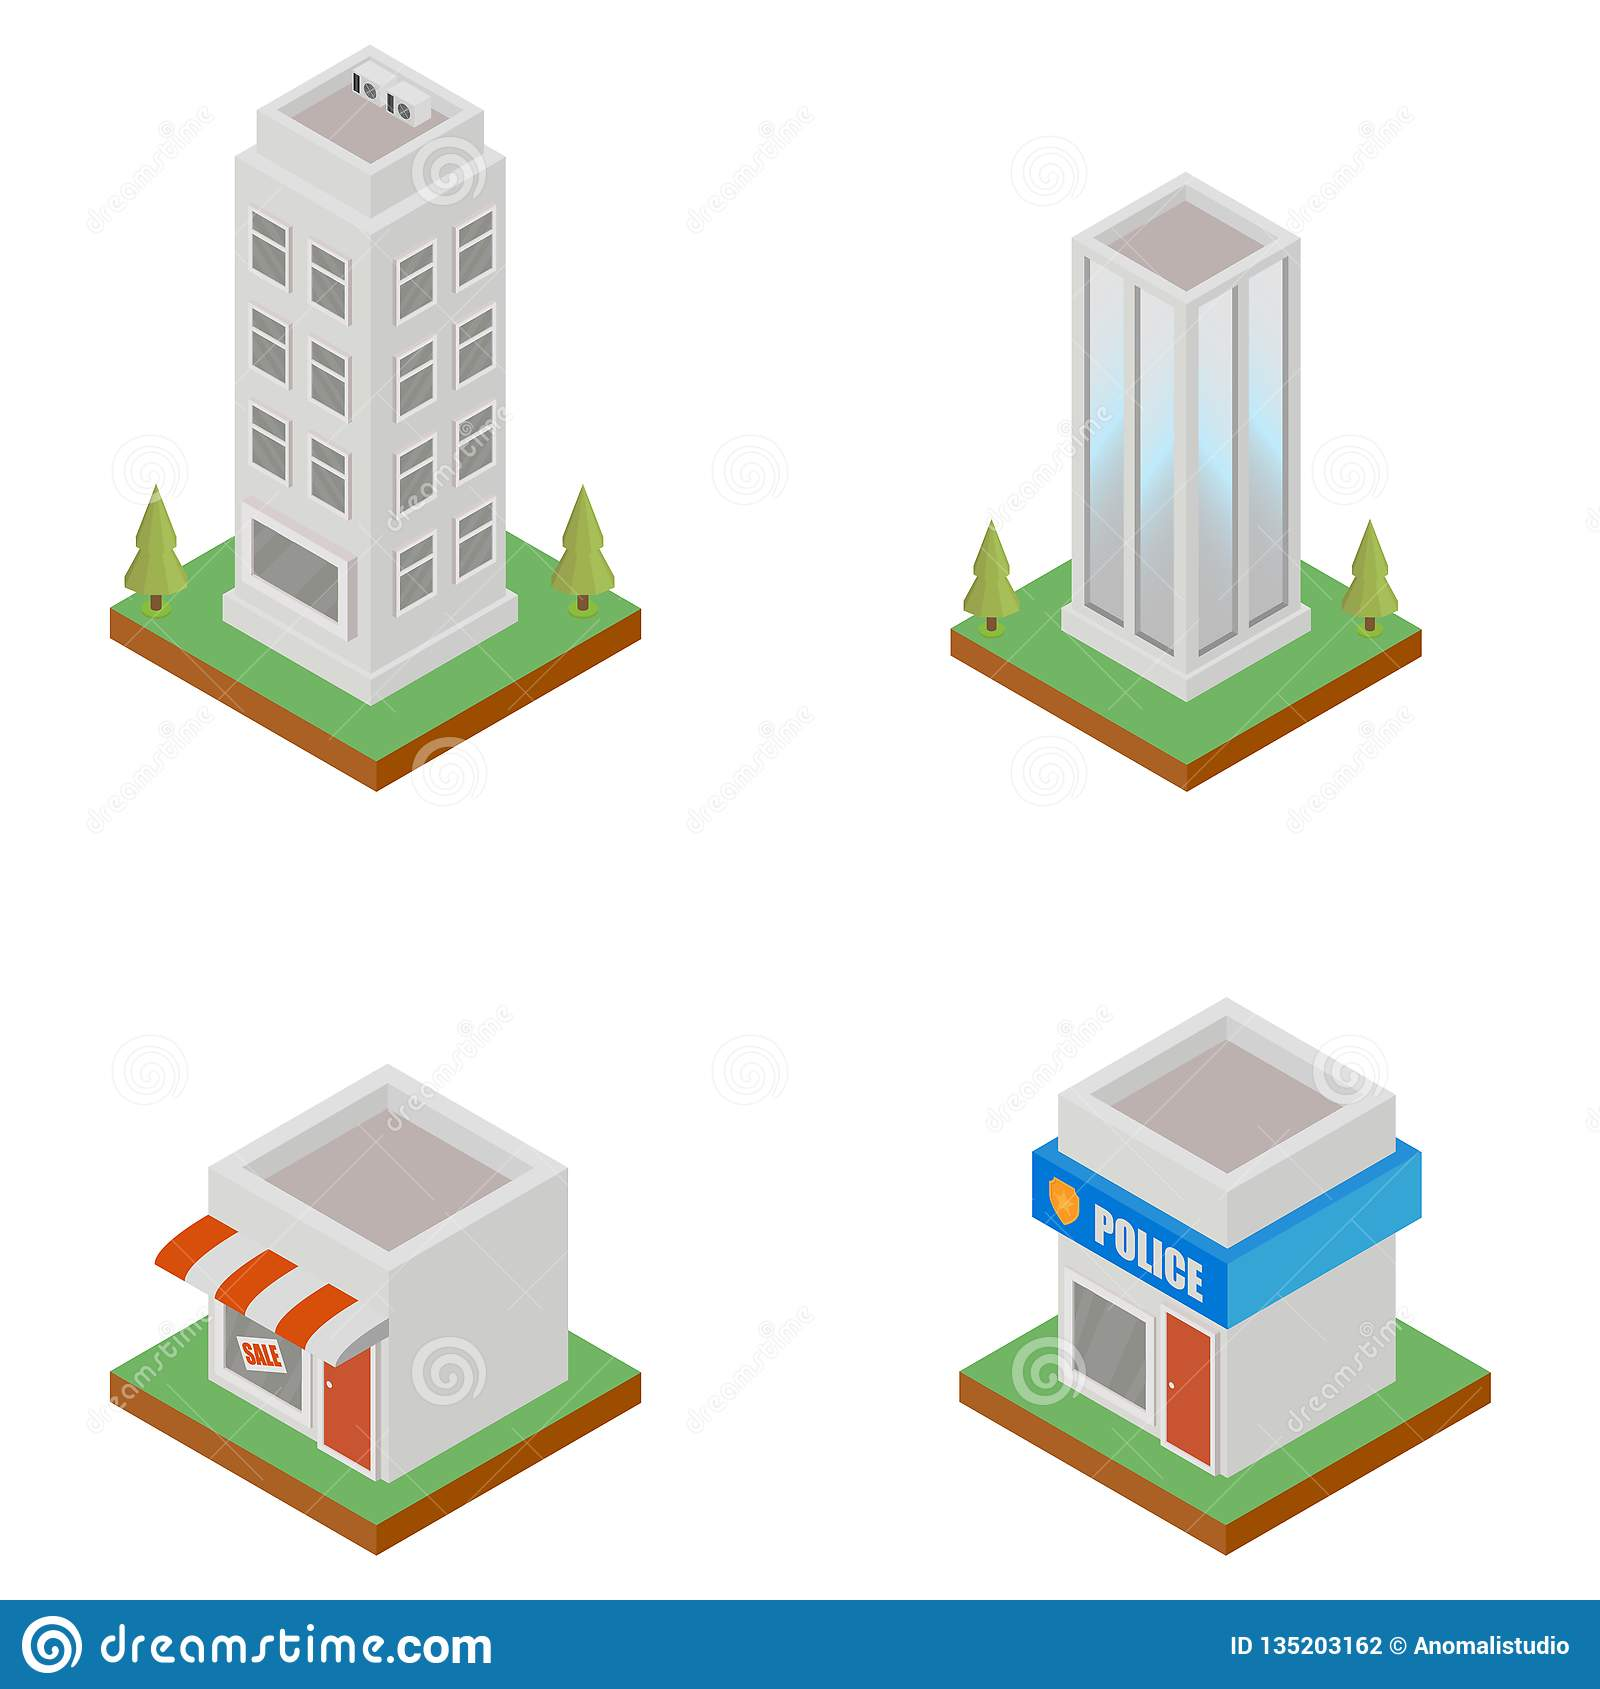 Isometric Buildings Exterior Stock Vector - Illustration of concept on